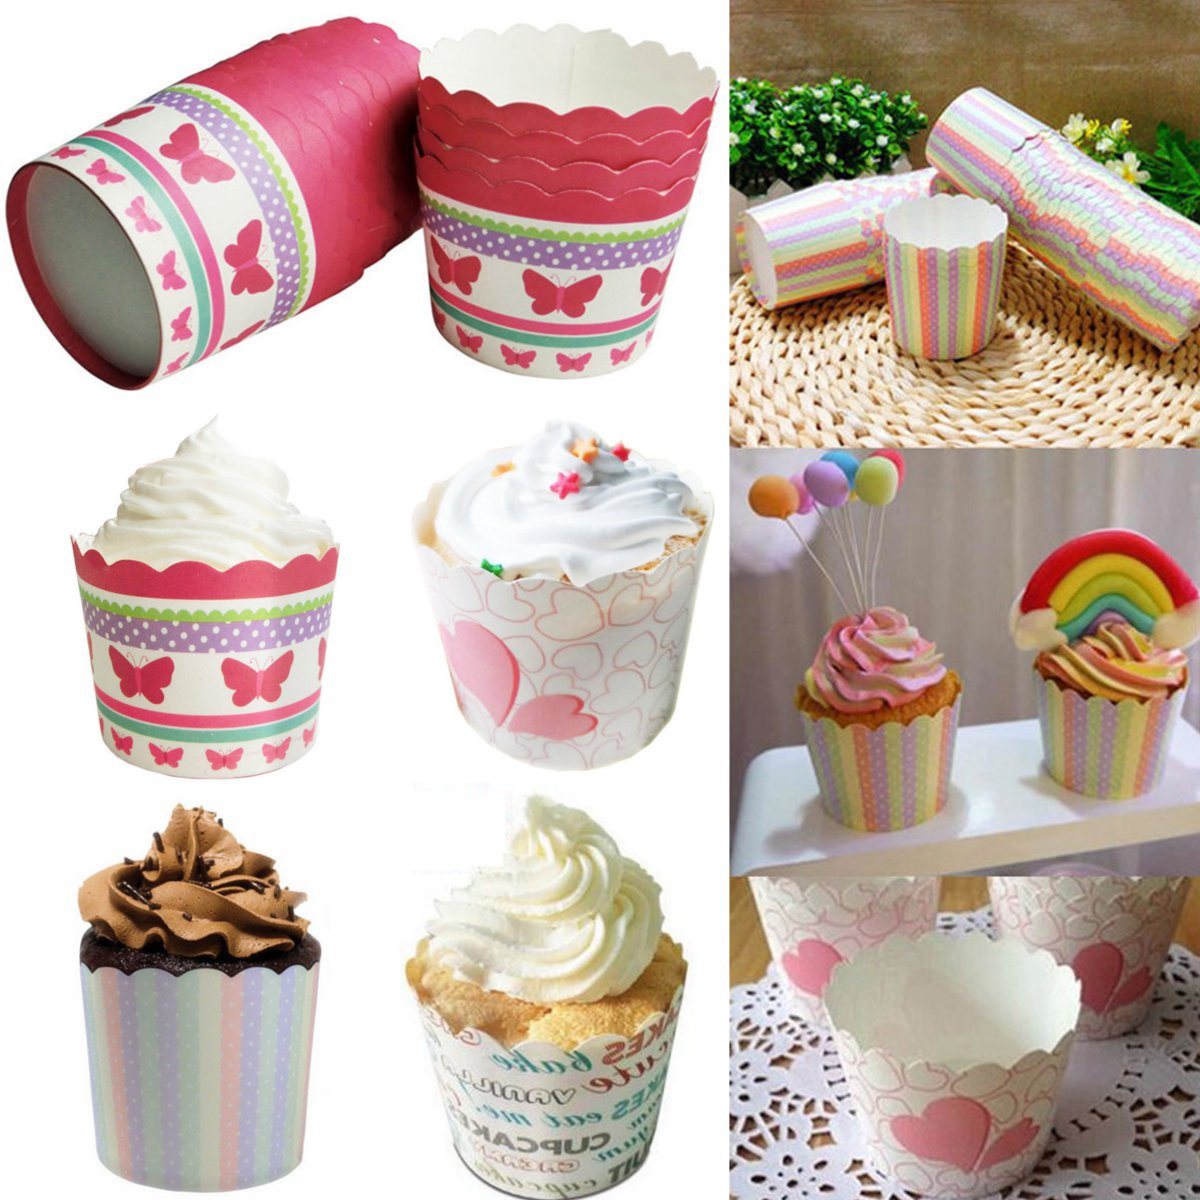 50pcs Mini Paper Baking Cup Liners Muffin Cup Cake Cases Wrapper Home Party Decor